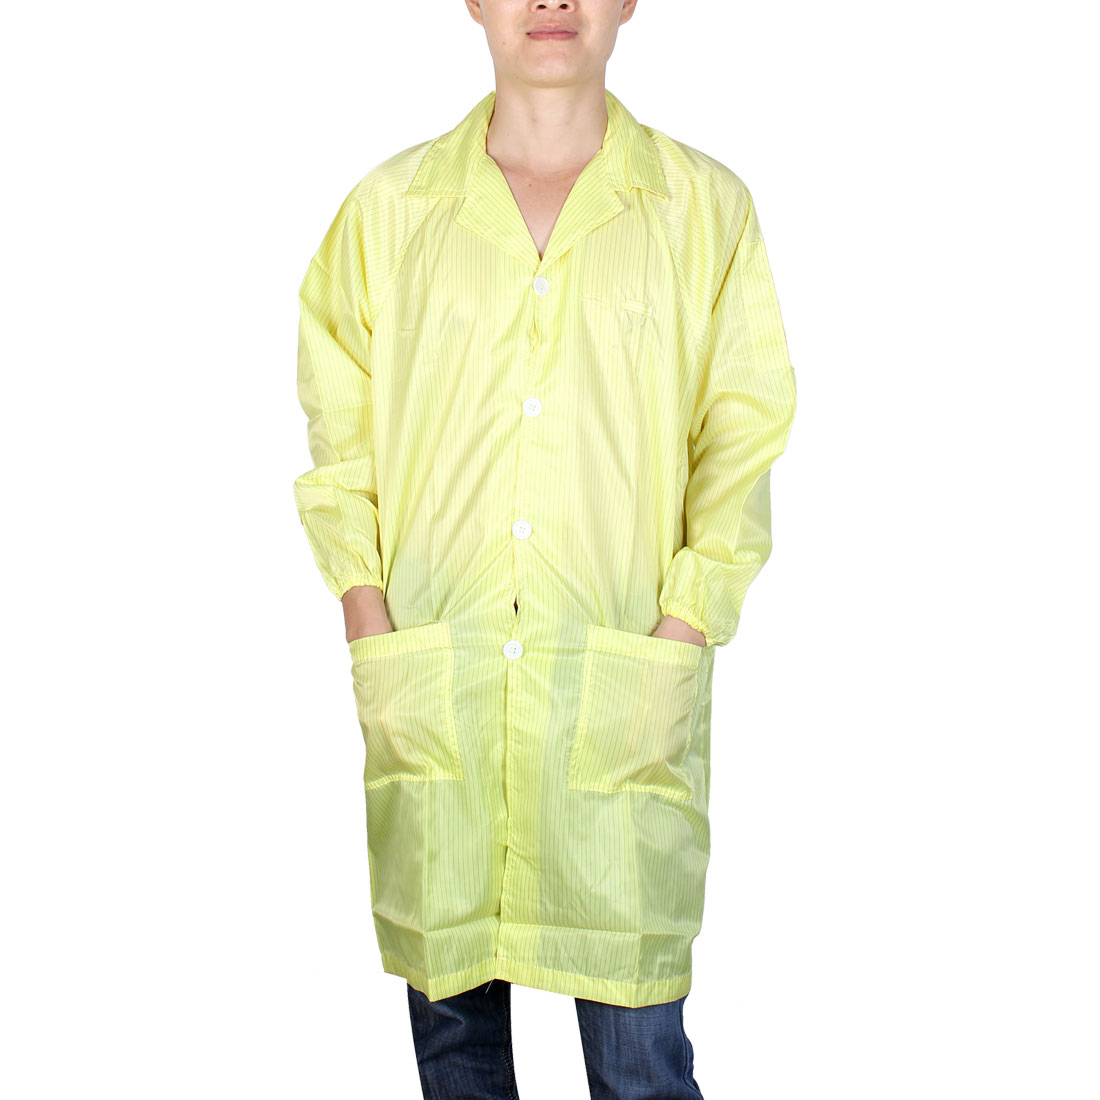 Unisex Long Sleeve Stripes Pattern Anti Static Overalls Coat Yellow X Large